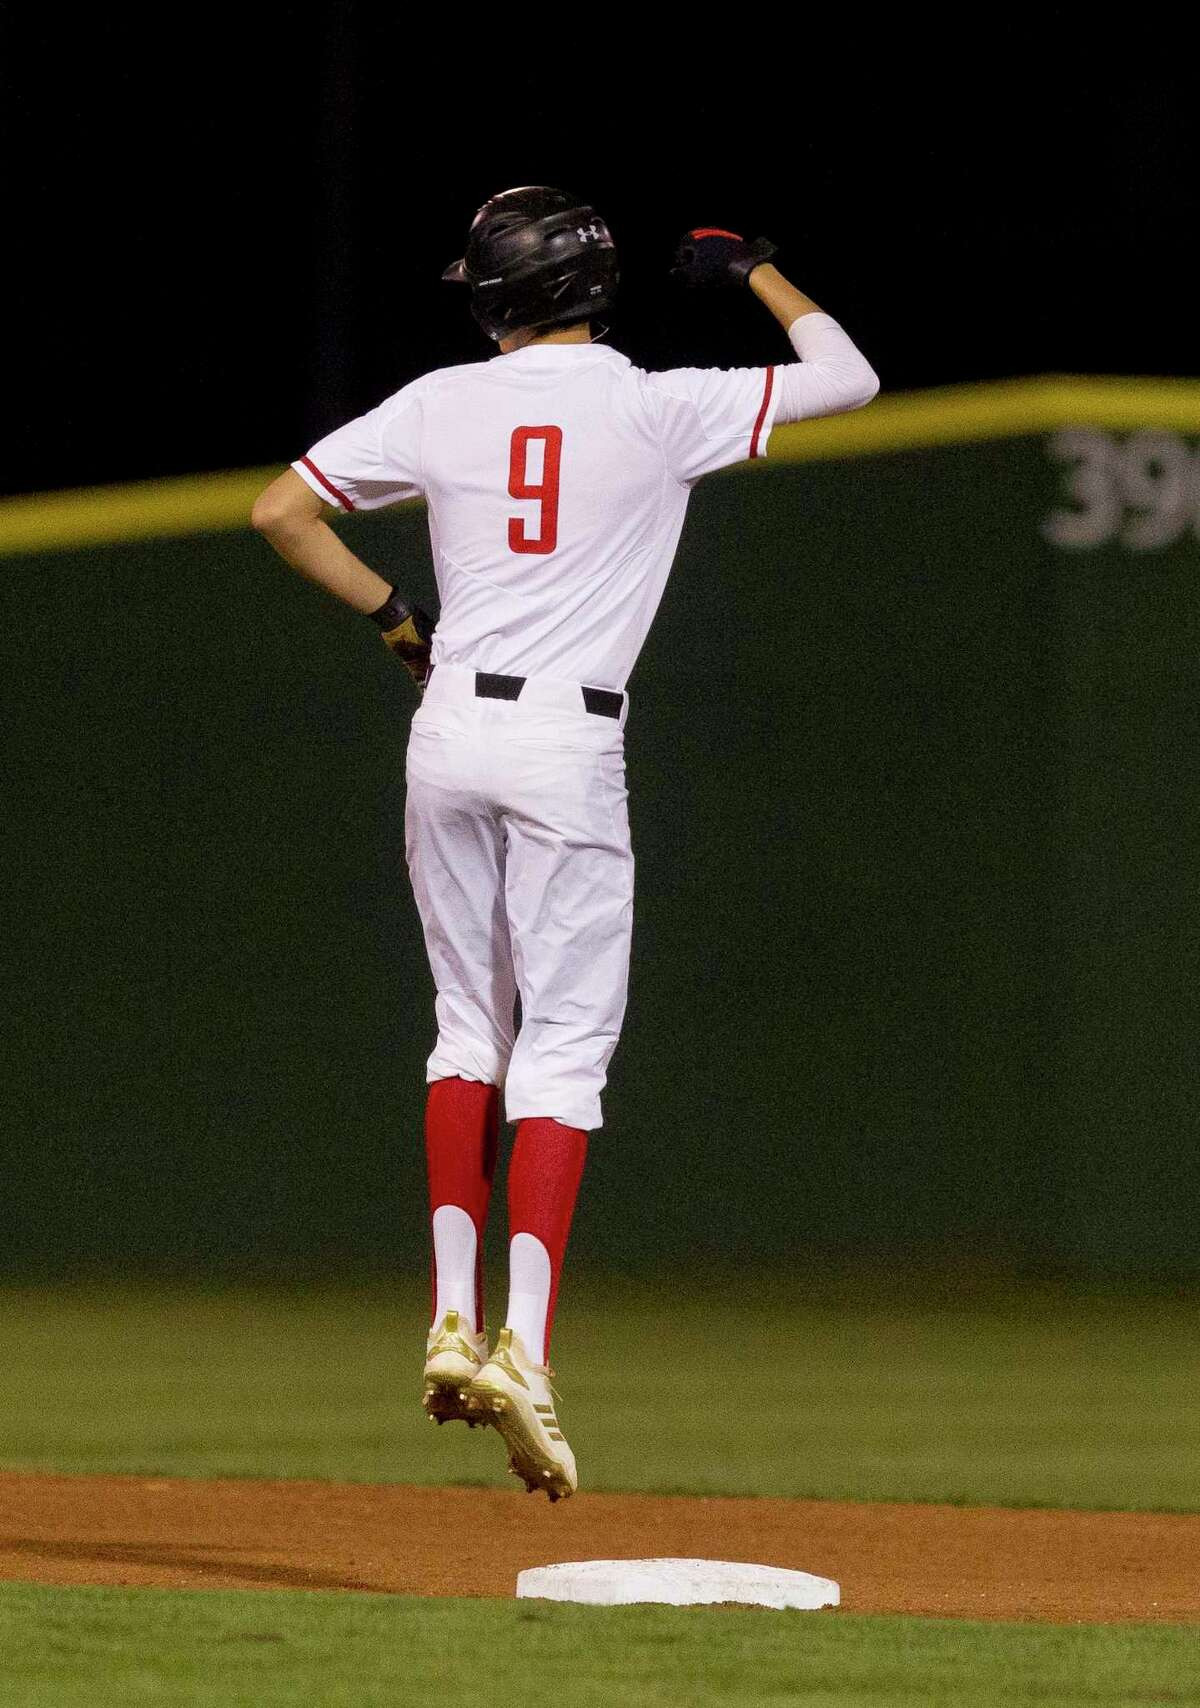 Coltin Atkinson #9 of Porter reacts after hitting an RBI double during the fourth inning of a District 20-5A high school baseball game at Porter High School, Tuesday, March 12, 2019, in Porter.